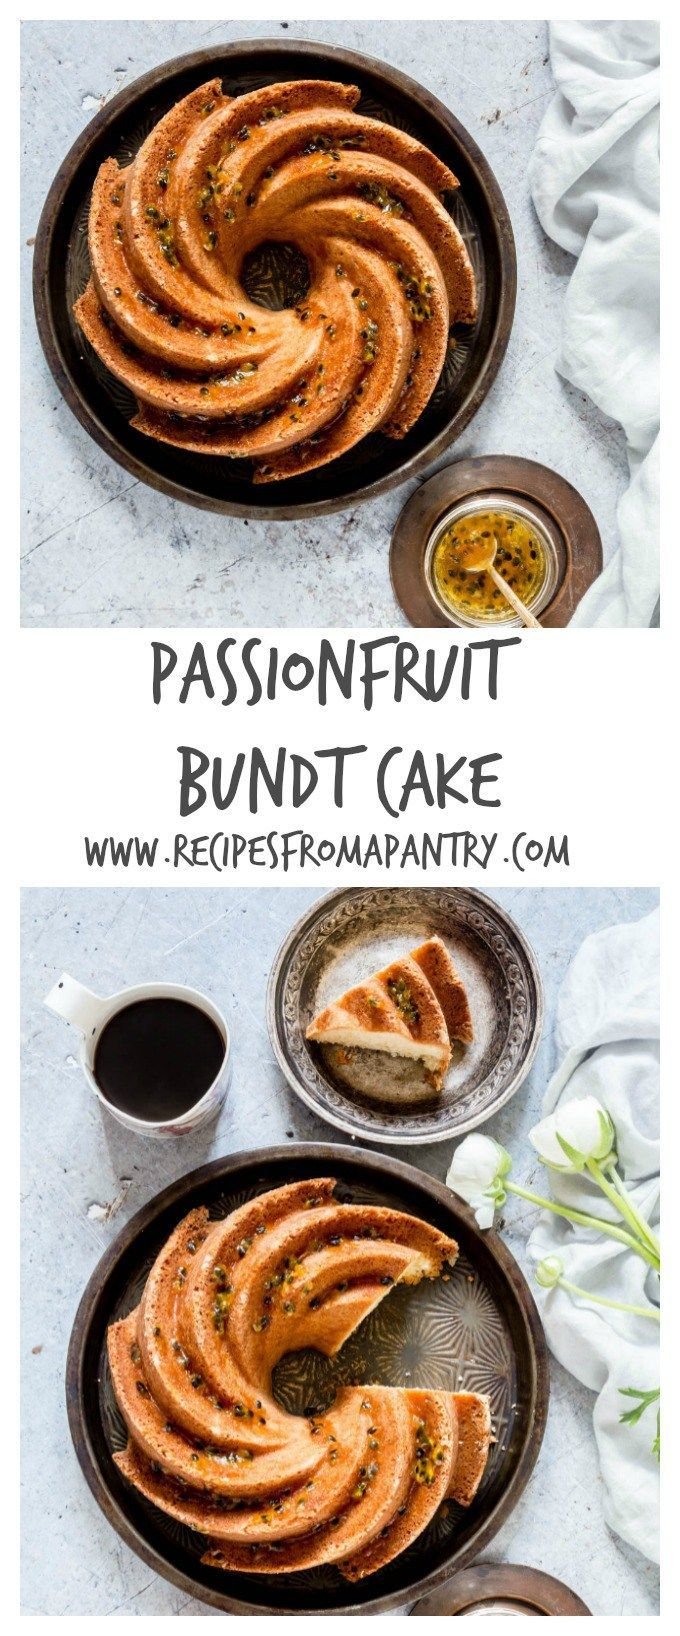 Passionfruit Bundt cake recipe with passionfruit syrup. A simple but tasty cake. | Recipes From A Pantry